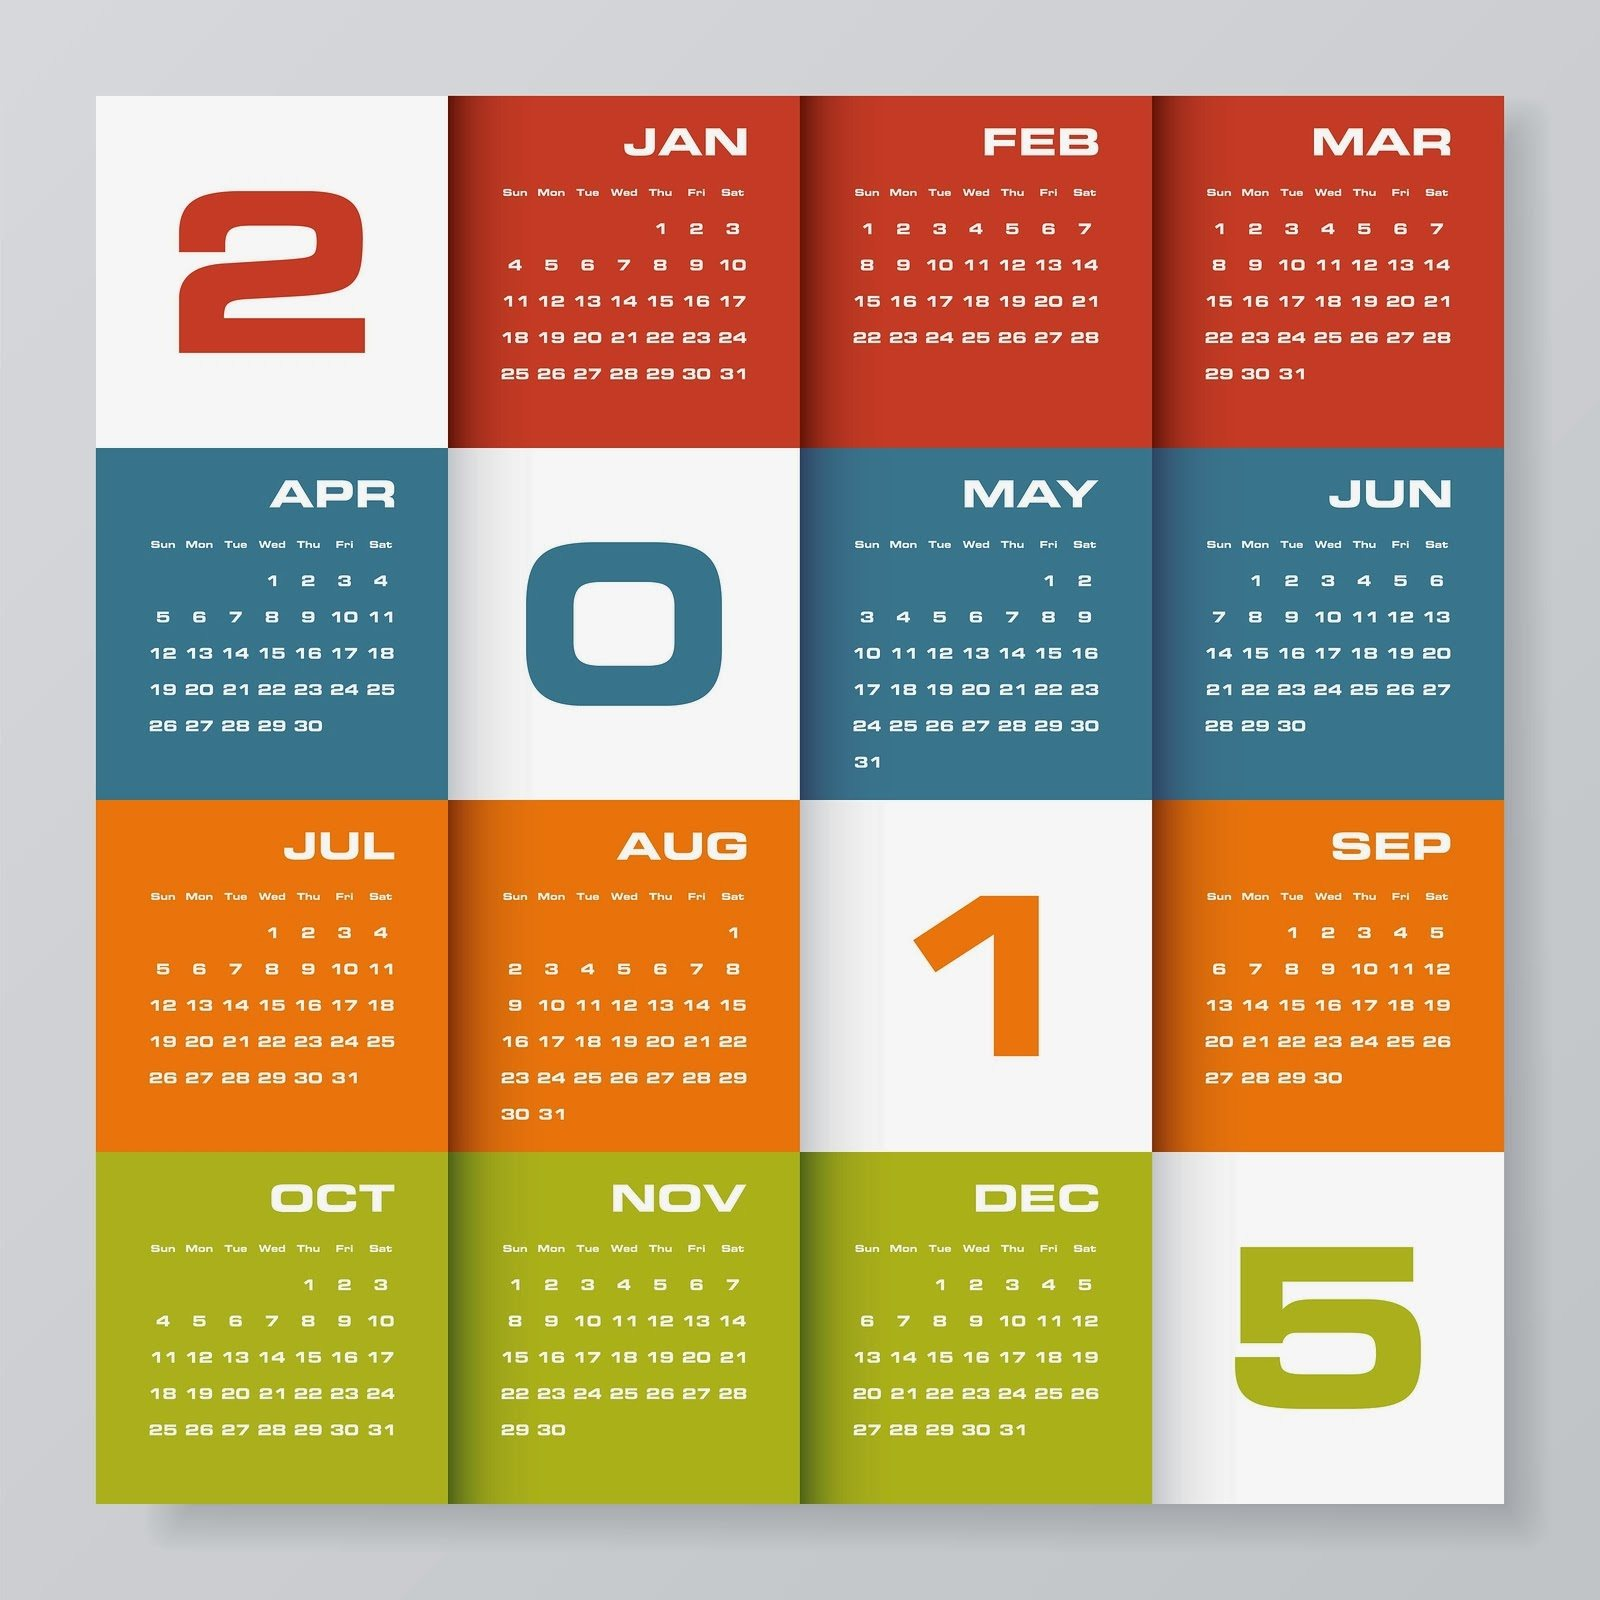 Calendar Design Photo : Amazing calendar for year designs